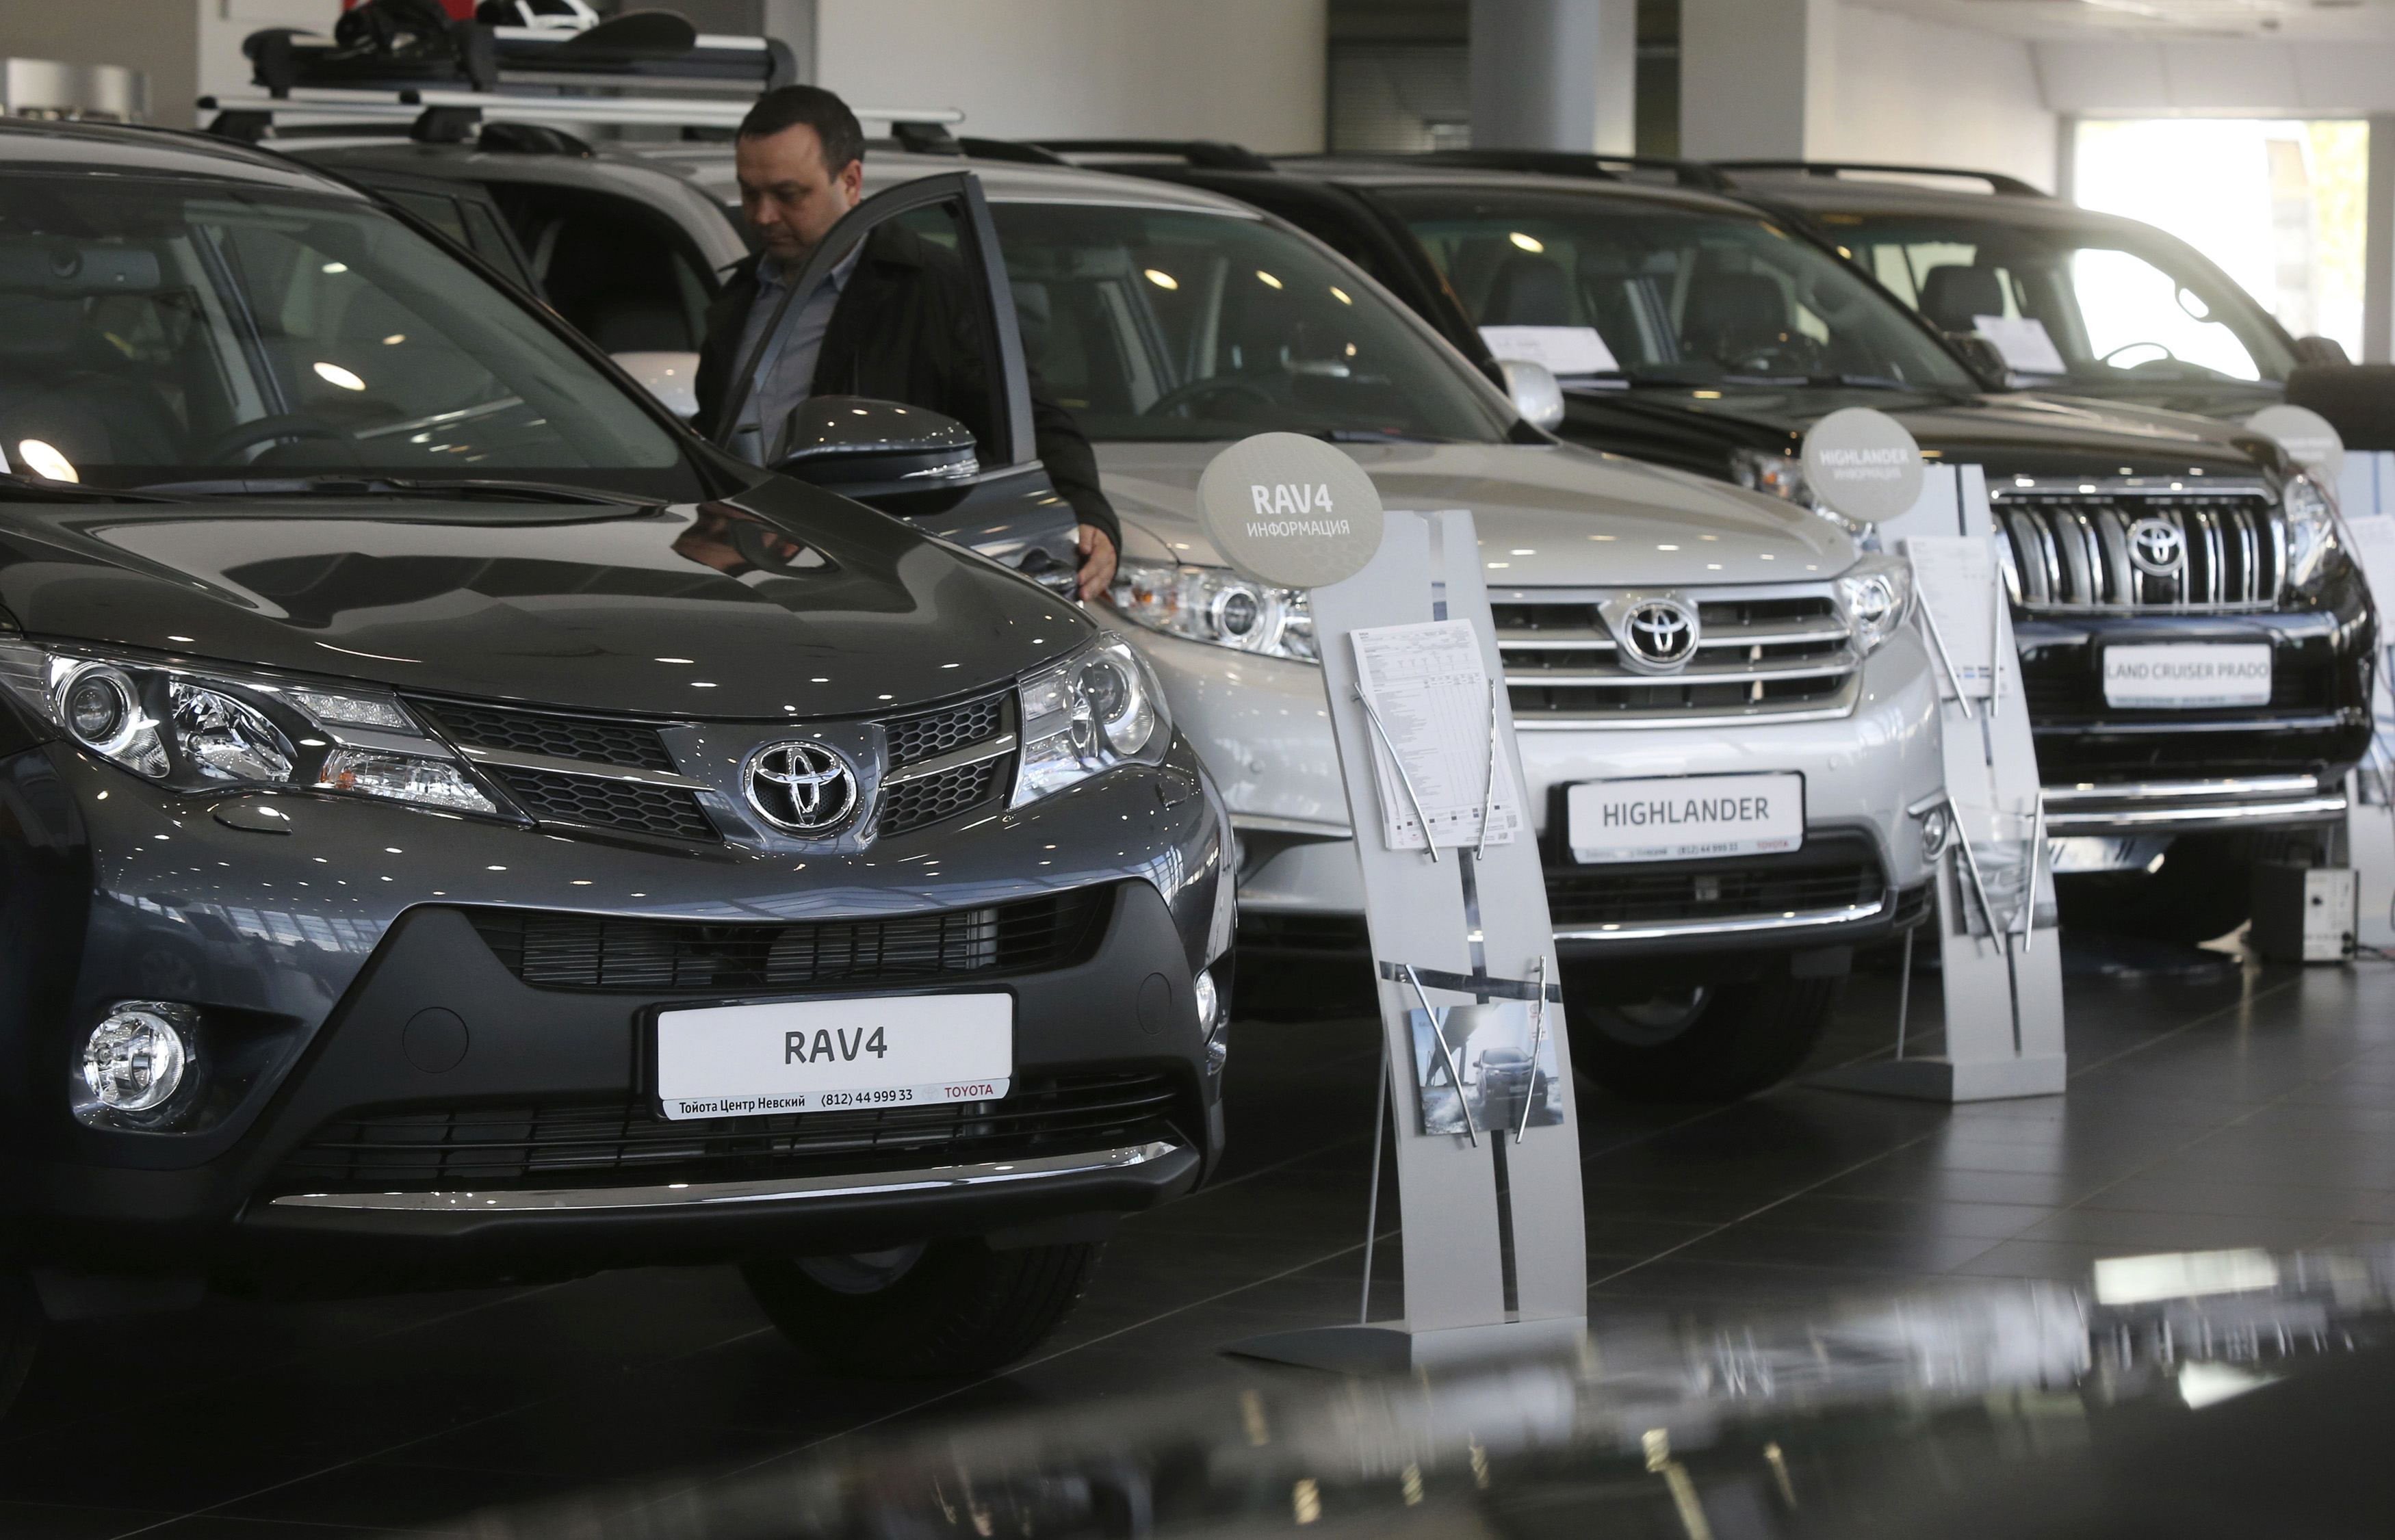 Toyota may rethink Thai investment plans if crisis lingers